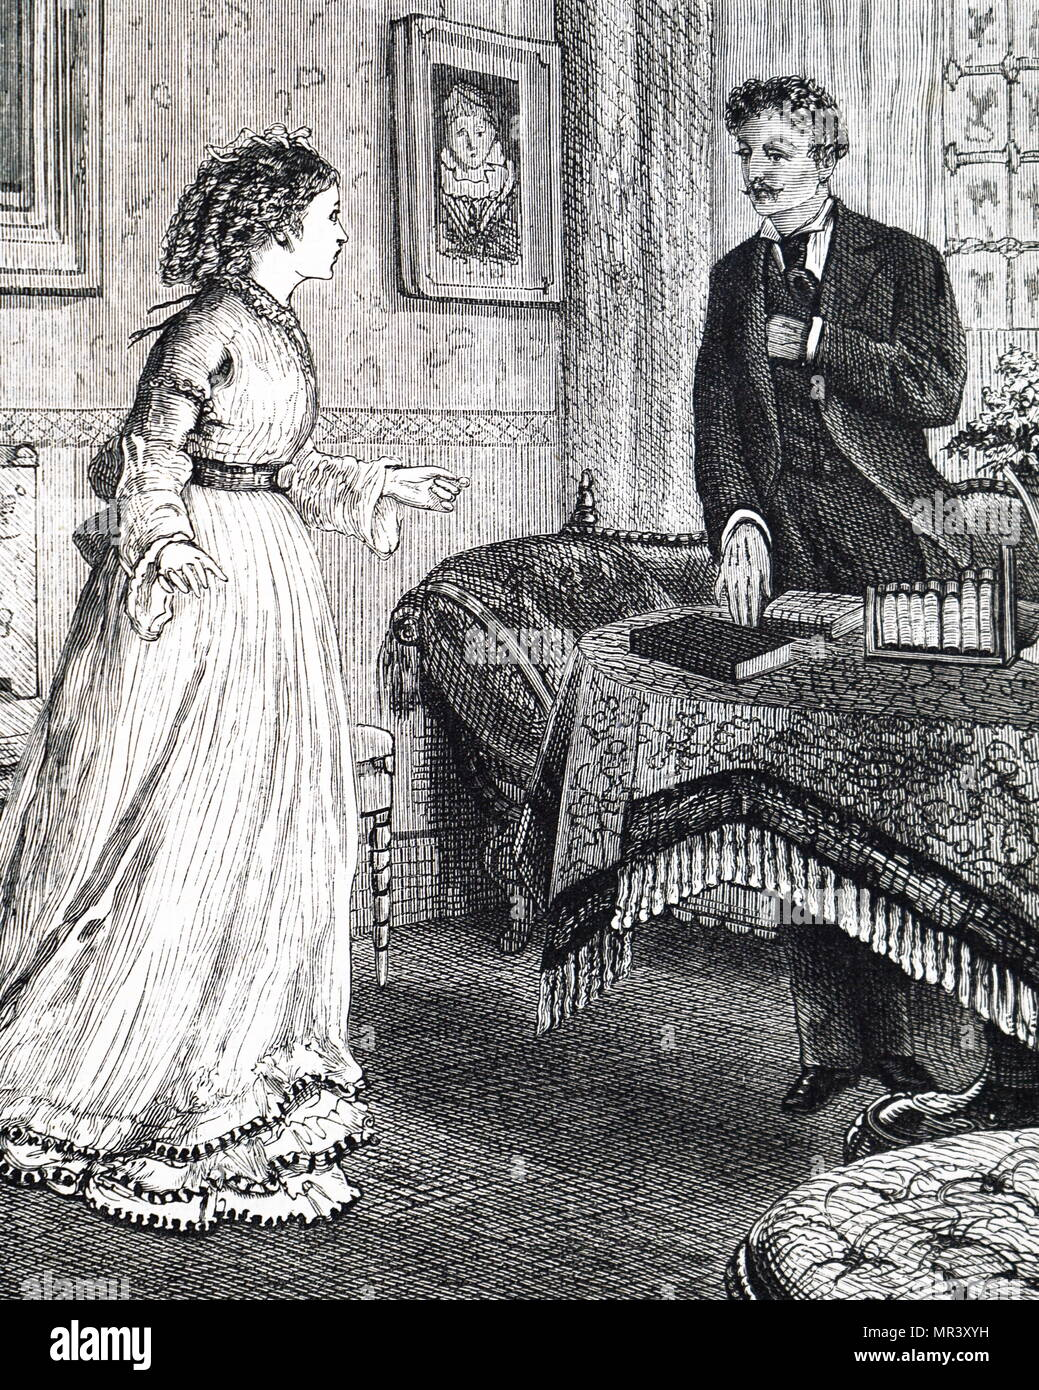 Illustration depicting a telescopic bookcase. Dated 19th century Stock Photo